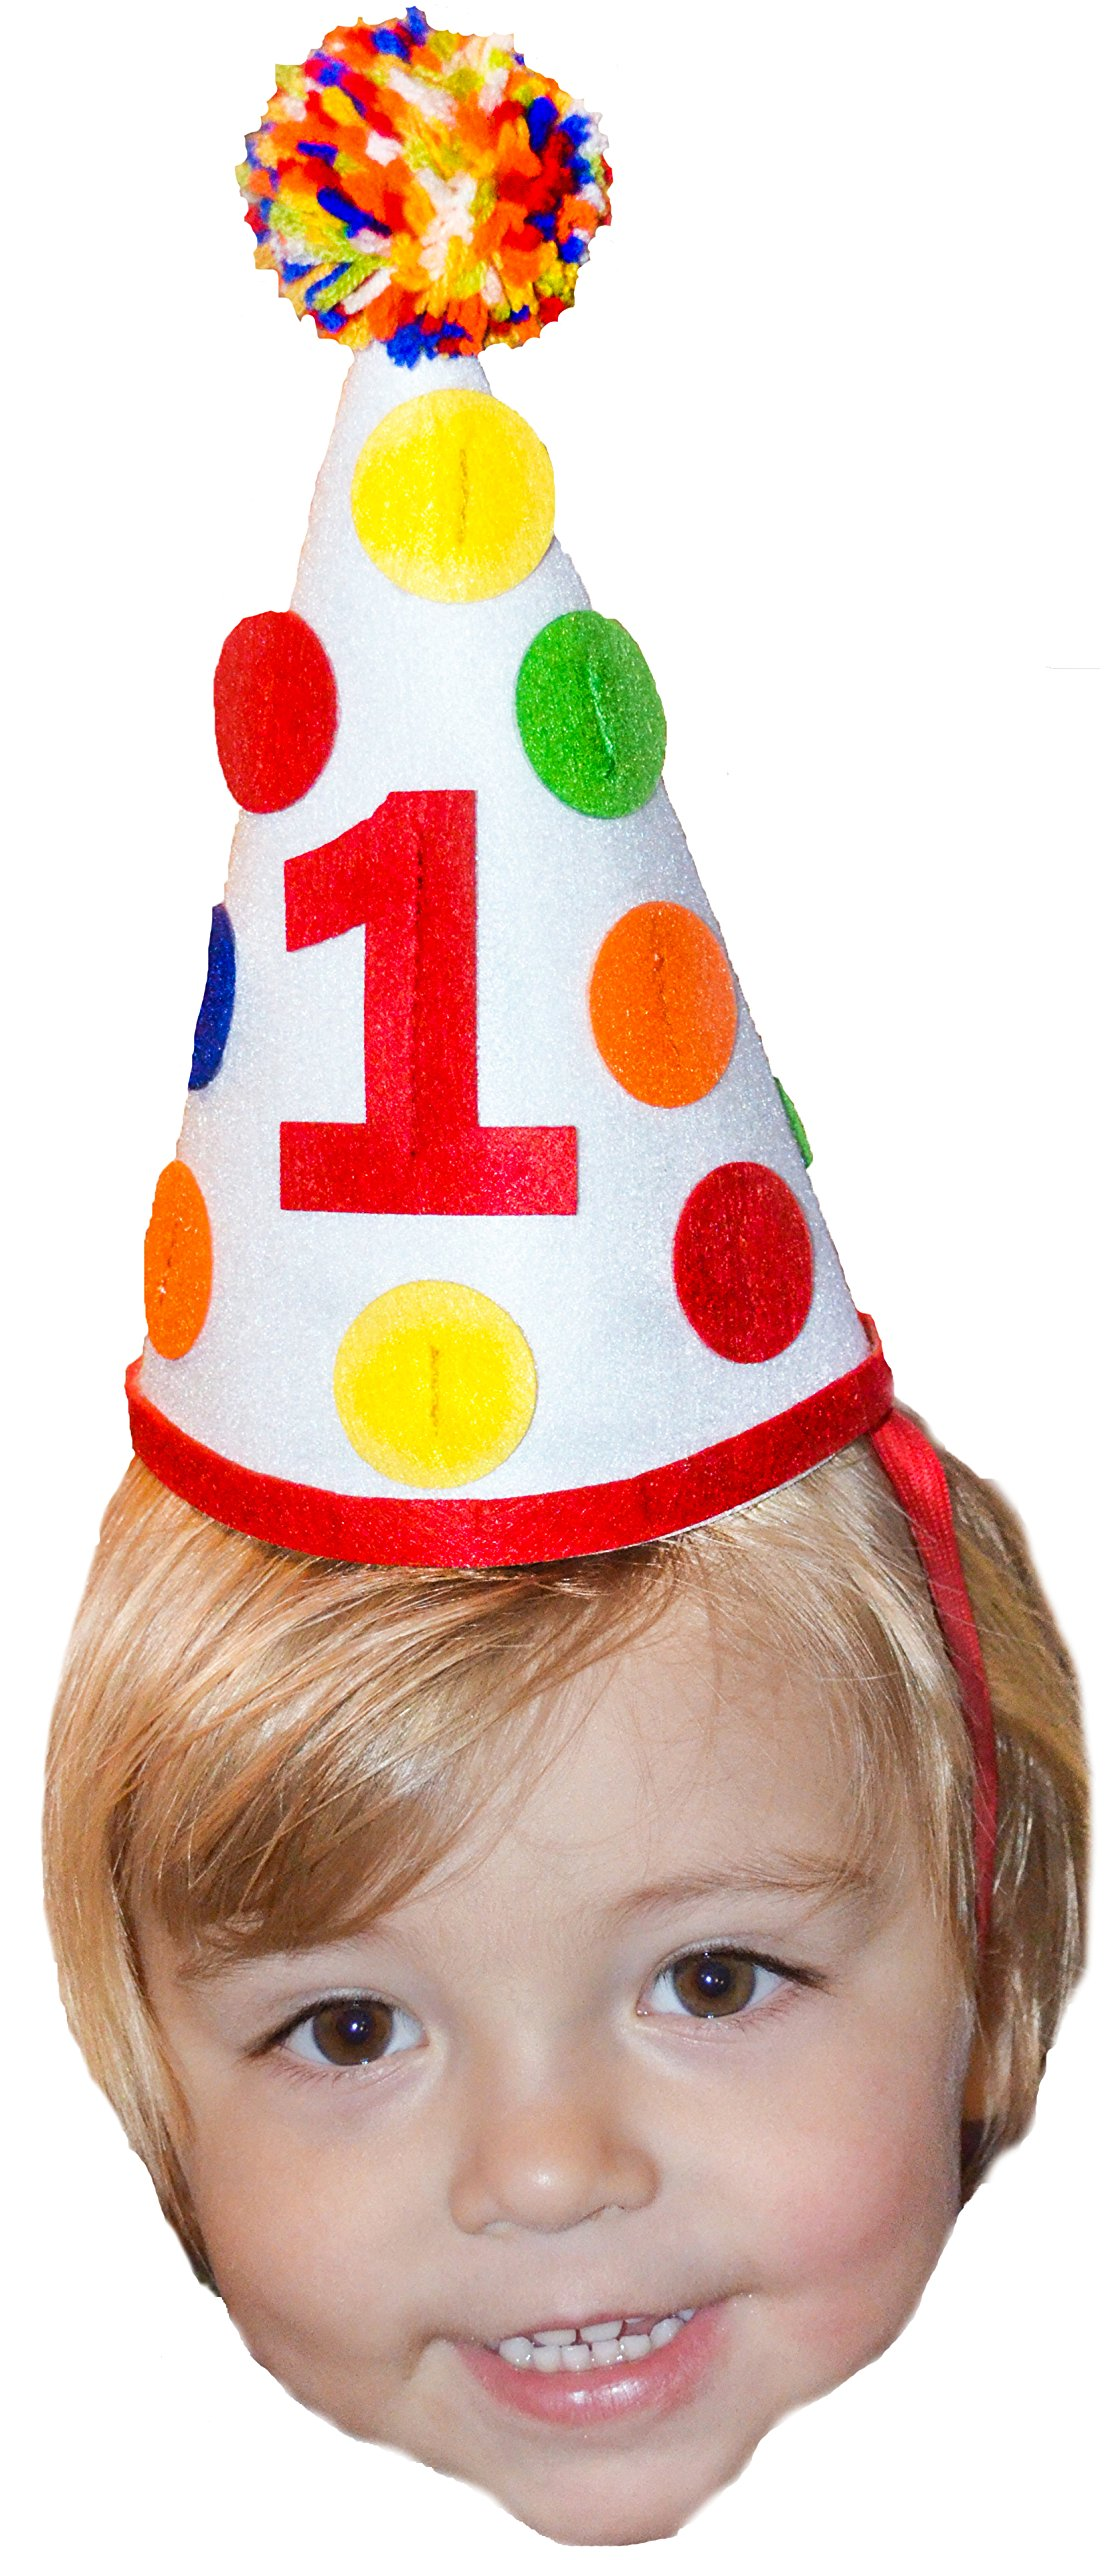 1st First Birthday Baby Boy Colorful Pom Pom Party Hat Girl Cake Smash Party Decorations by Birdy Boutique (Image #1)